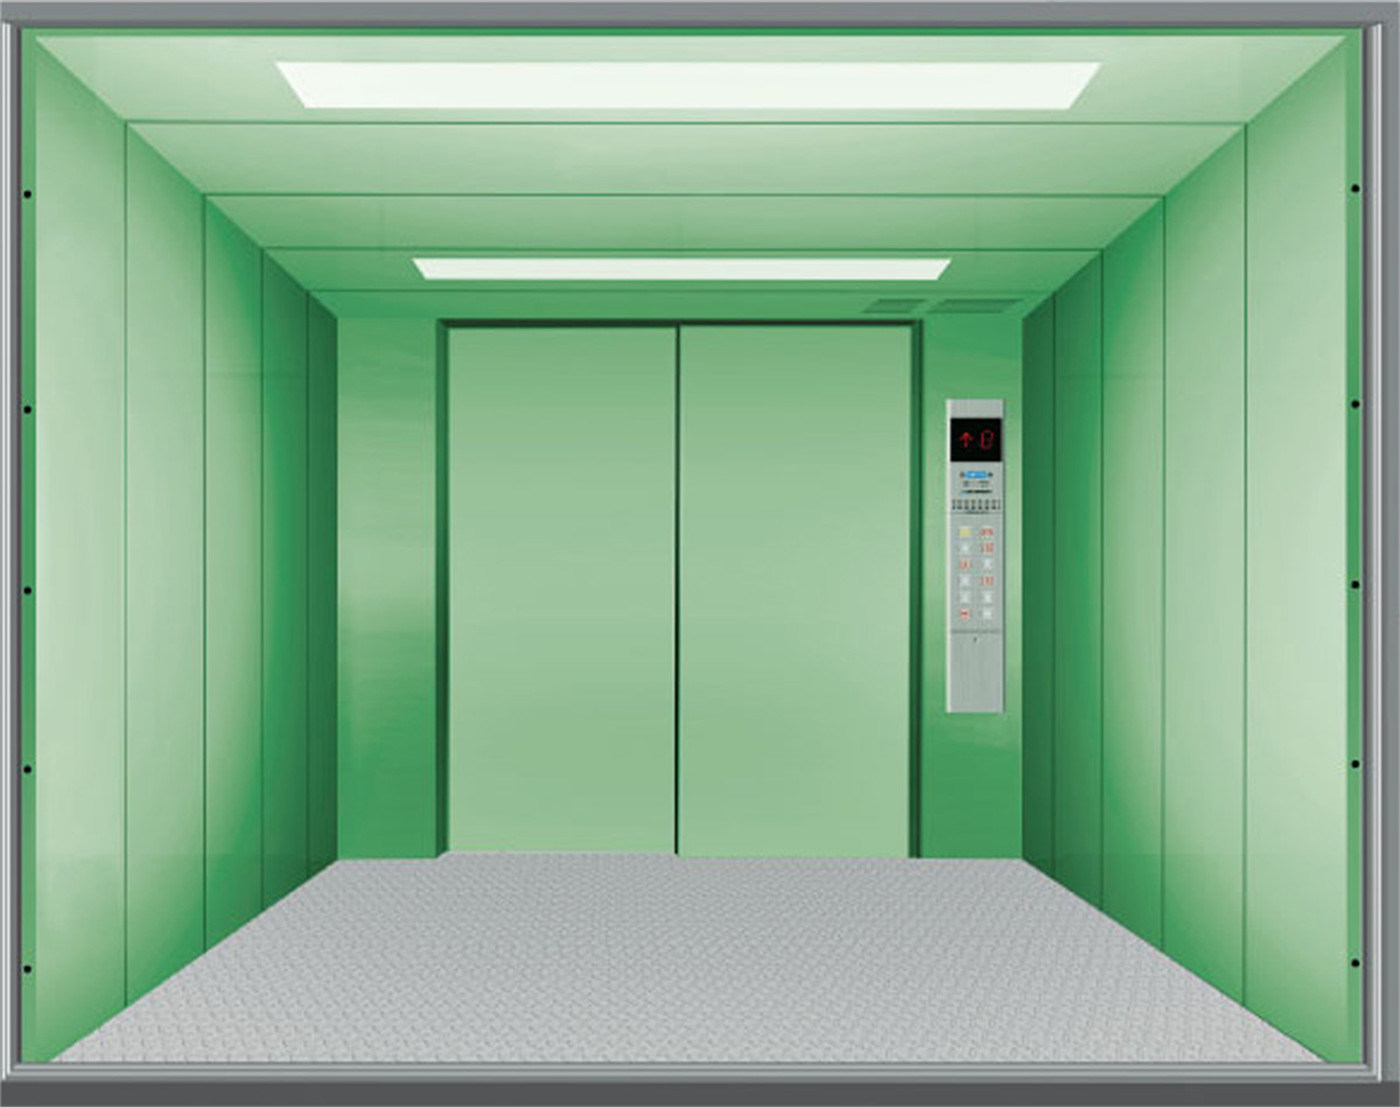 Shandong Fujizy Car Elevator Price / Elevator Manufacture with Energy-Saving System (operation box with double buttons)